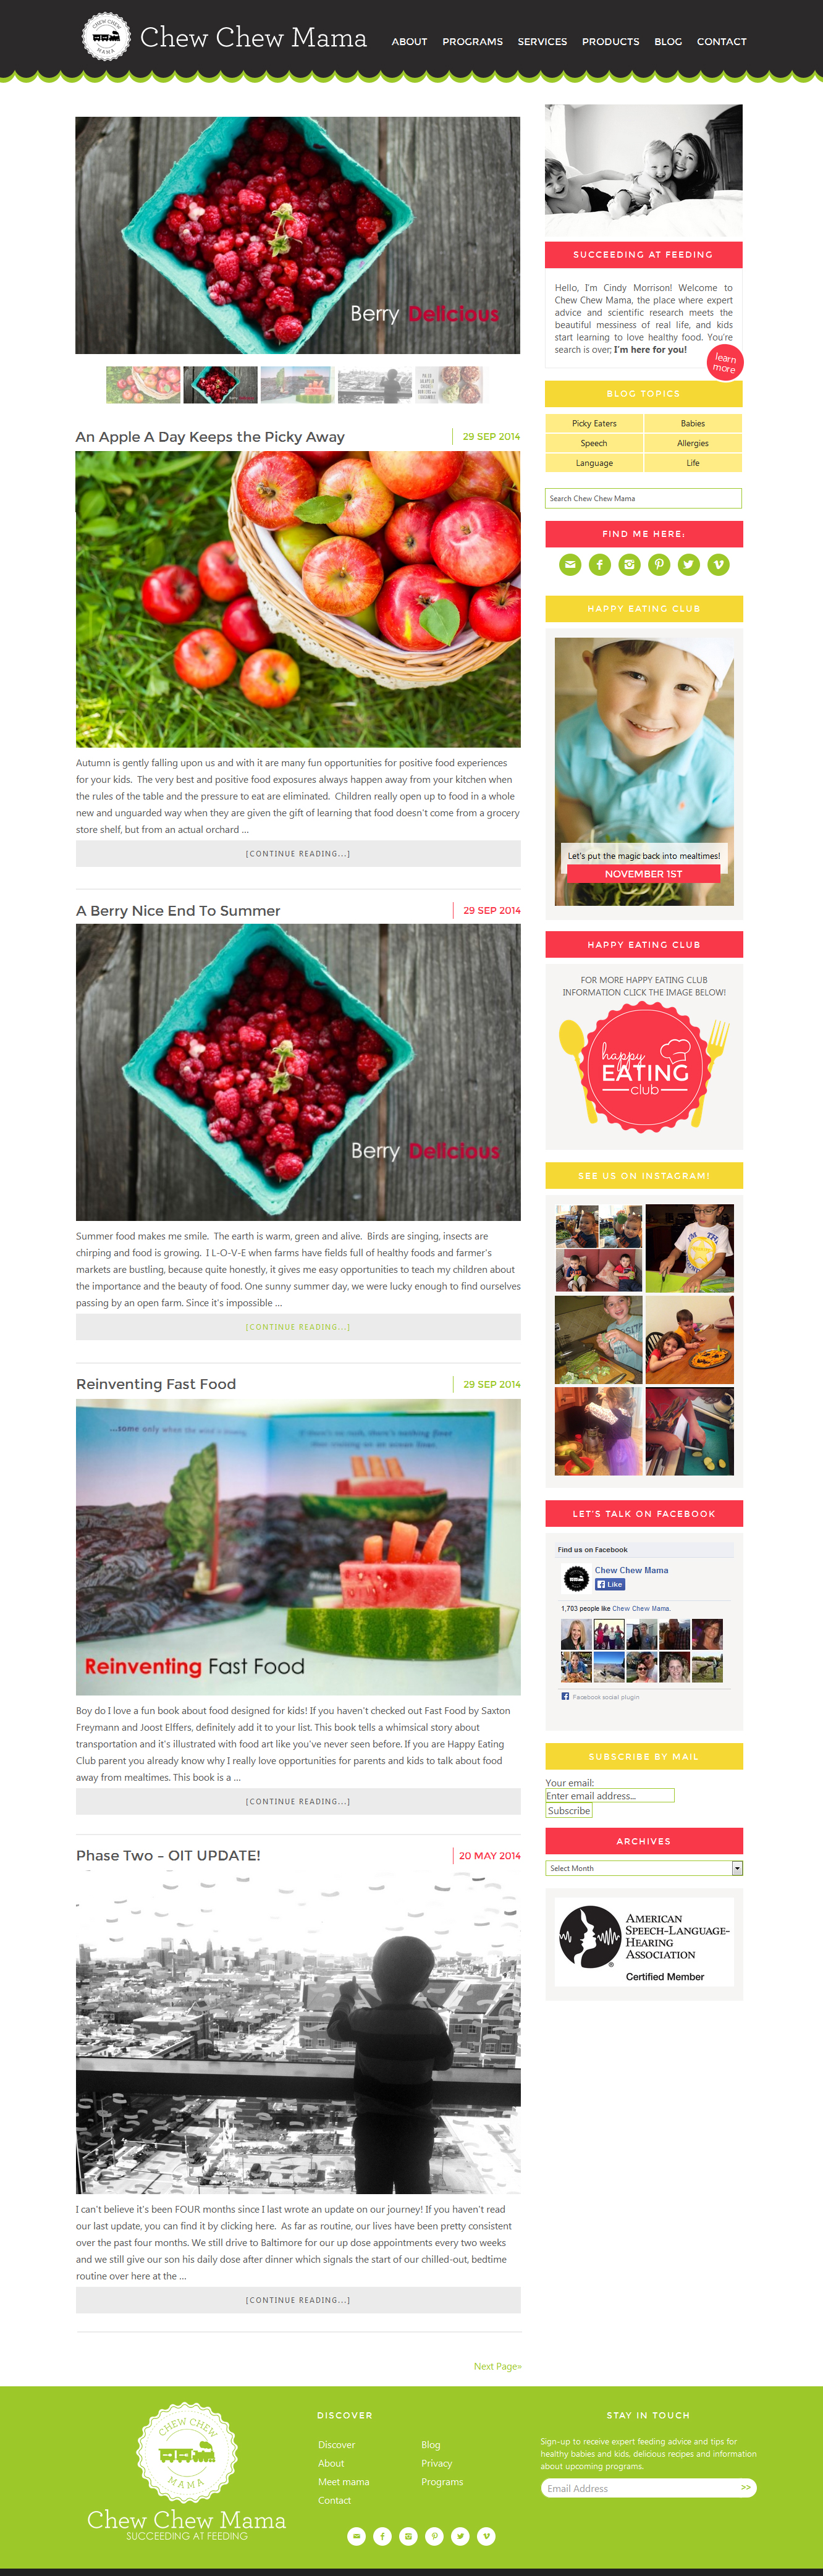 Chew-Chew-Mama-custom-blog-design-full-design